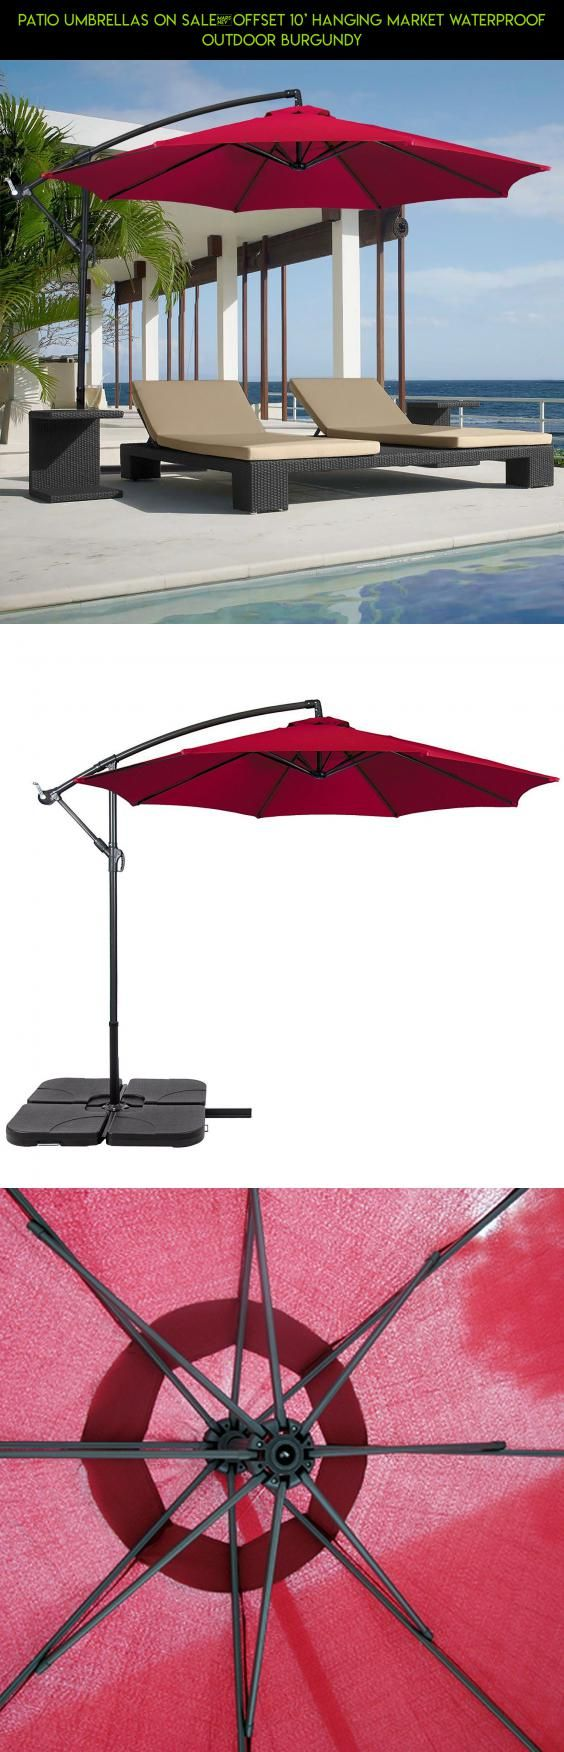 Patio Umbrellas On Sale	Offset 10' Hanging Market Waterproof Outdoor Burgundy #plans #racing #parts #fpv #kit #technology #drone #tech #on #camera #products #pools #sale #gadgets #shopping